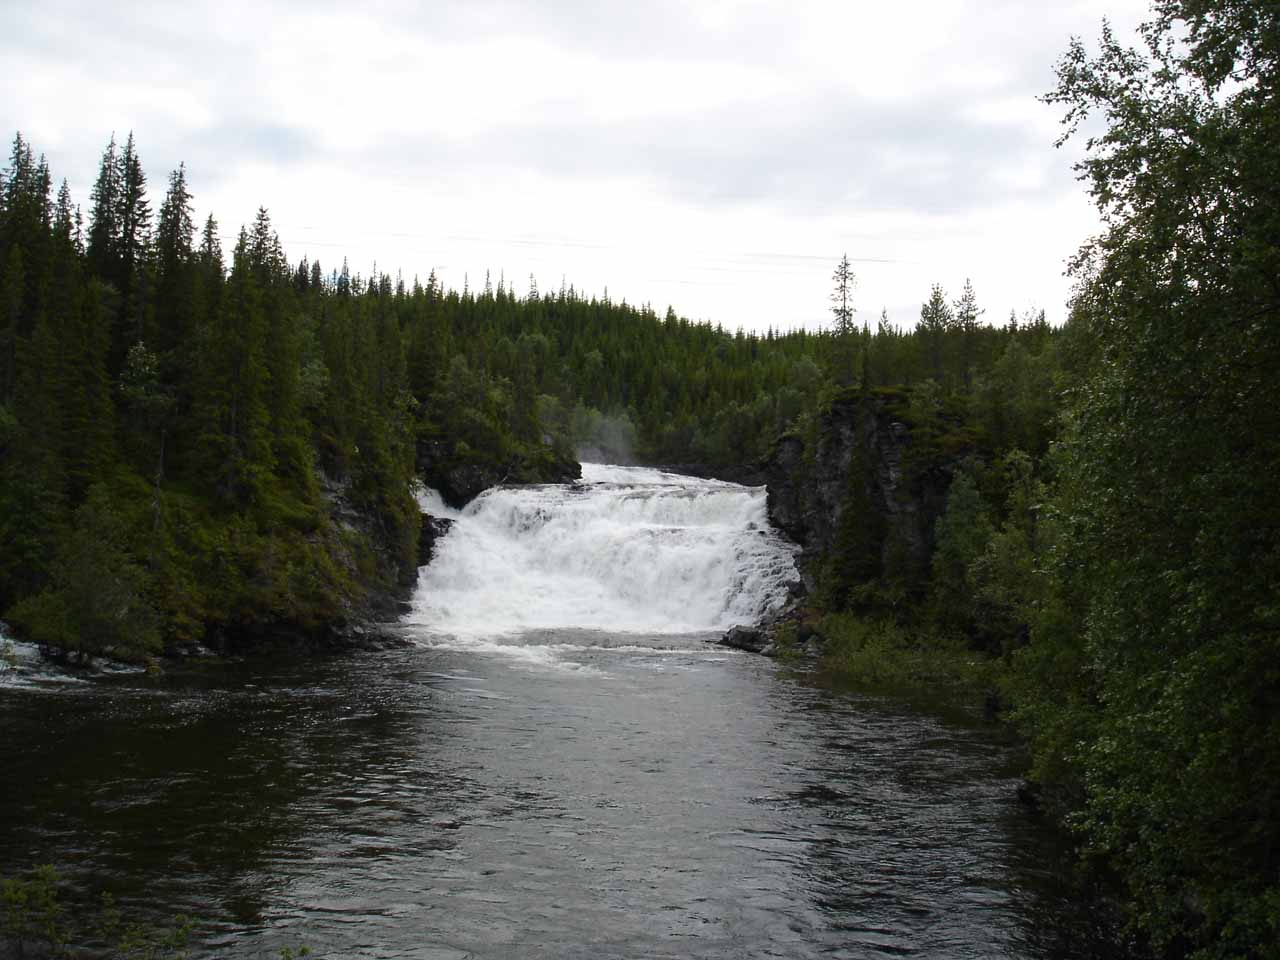 Looking upstream from the road bridge just 660m from the Road 705 where we caught a glimpse of this waterfall called Kvernfossen